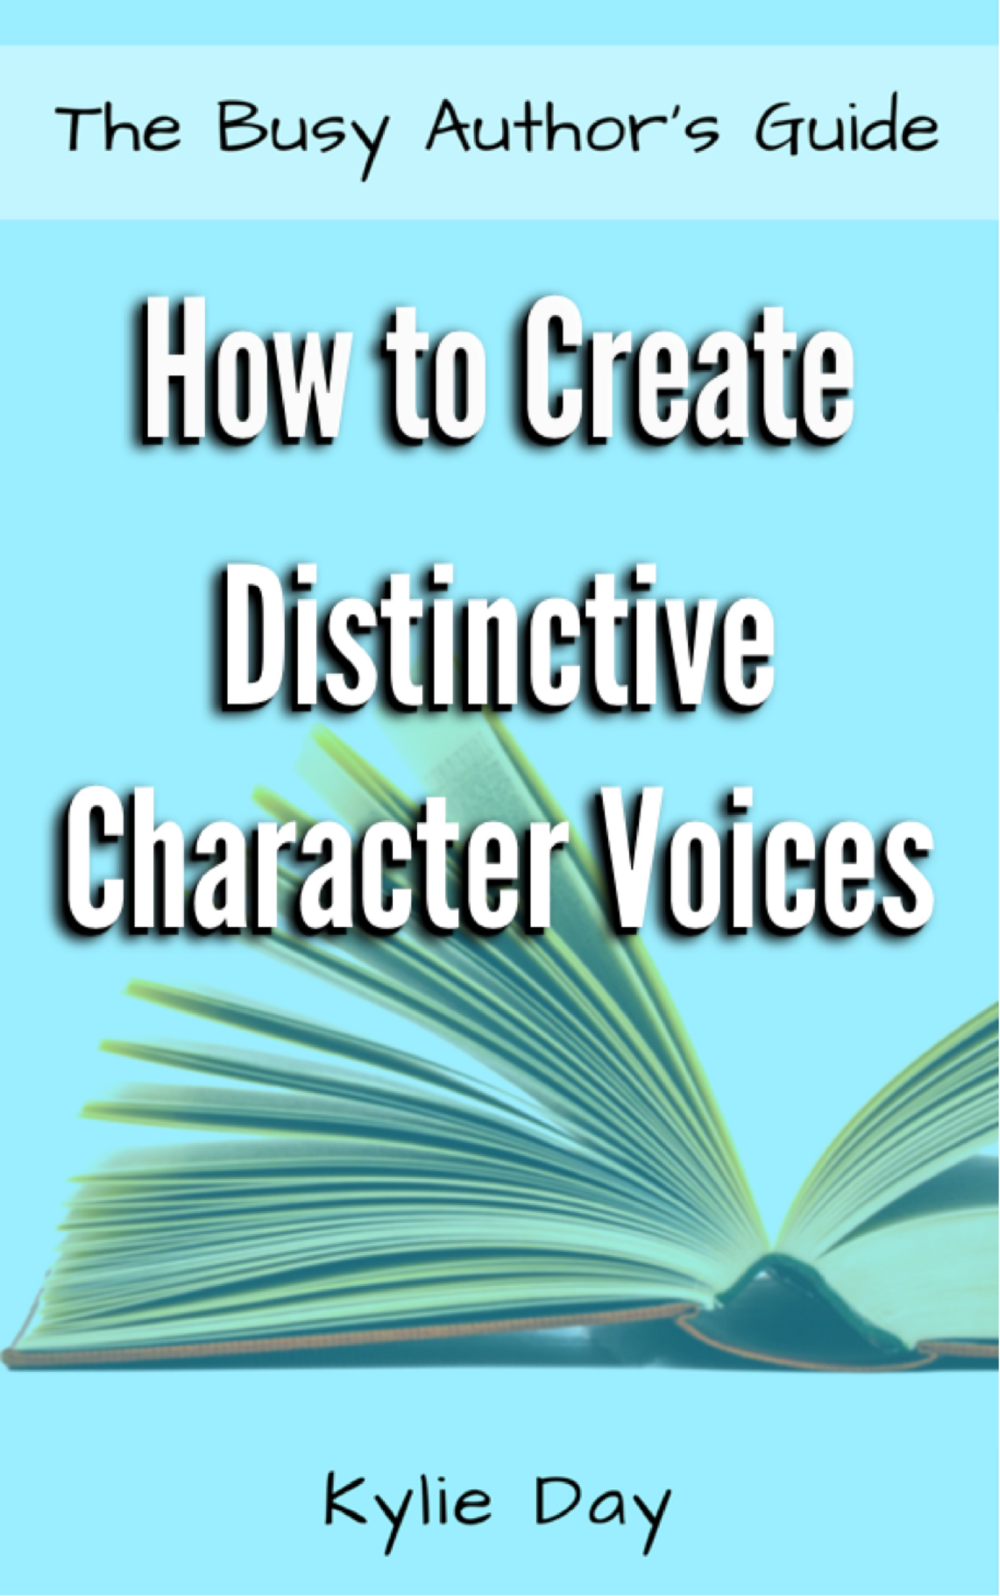 Book Release — How to Create Distinctive Character Voices, The Busy Author's Guide Book 11